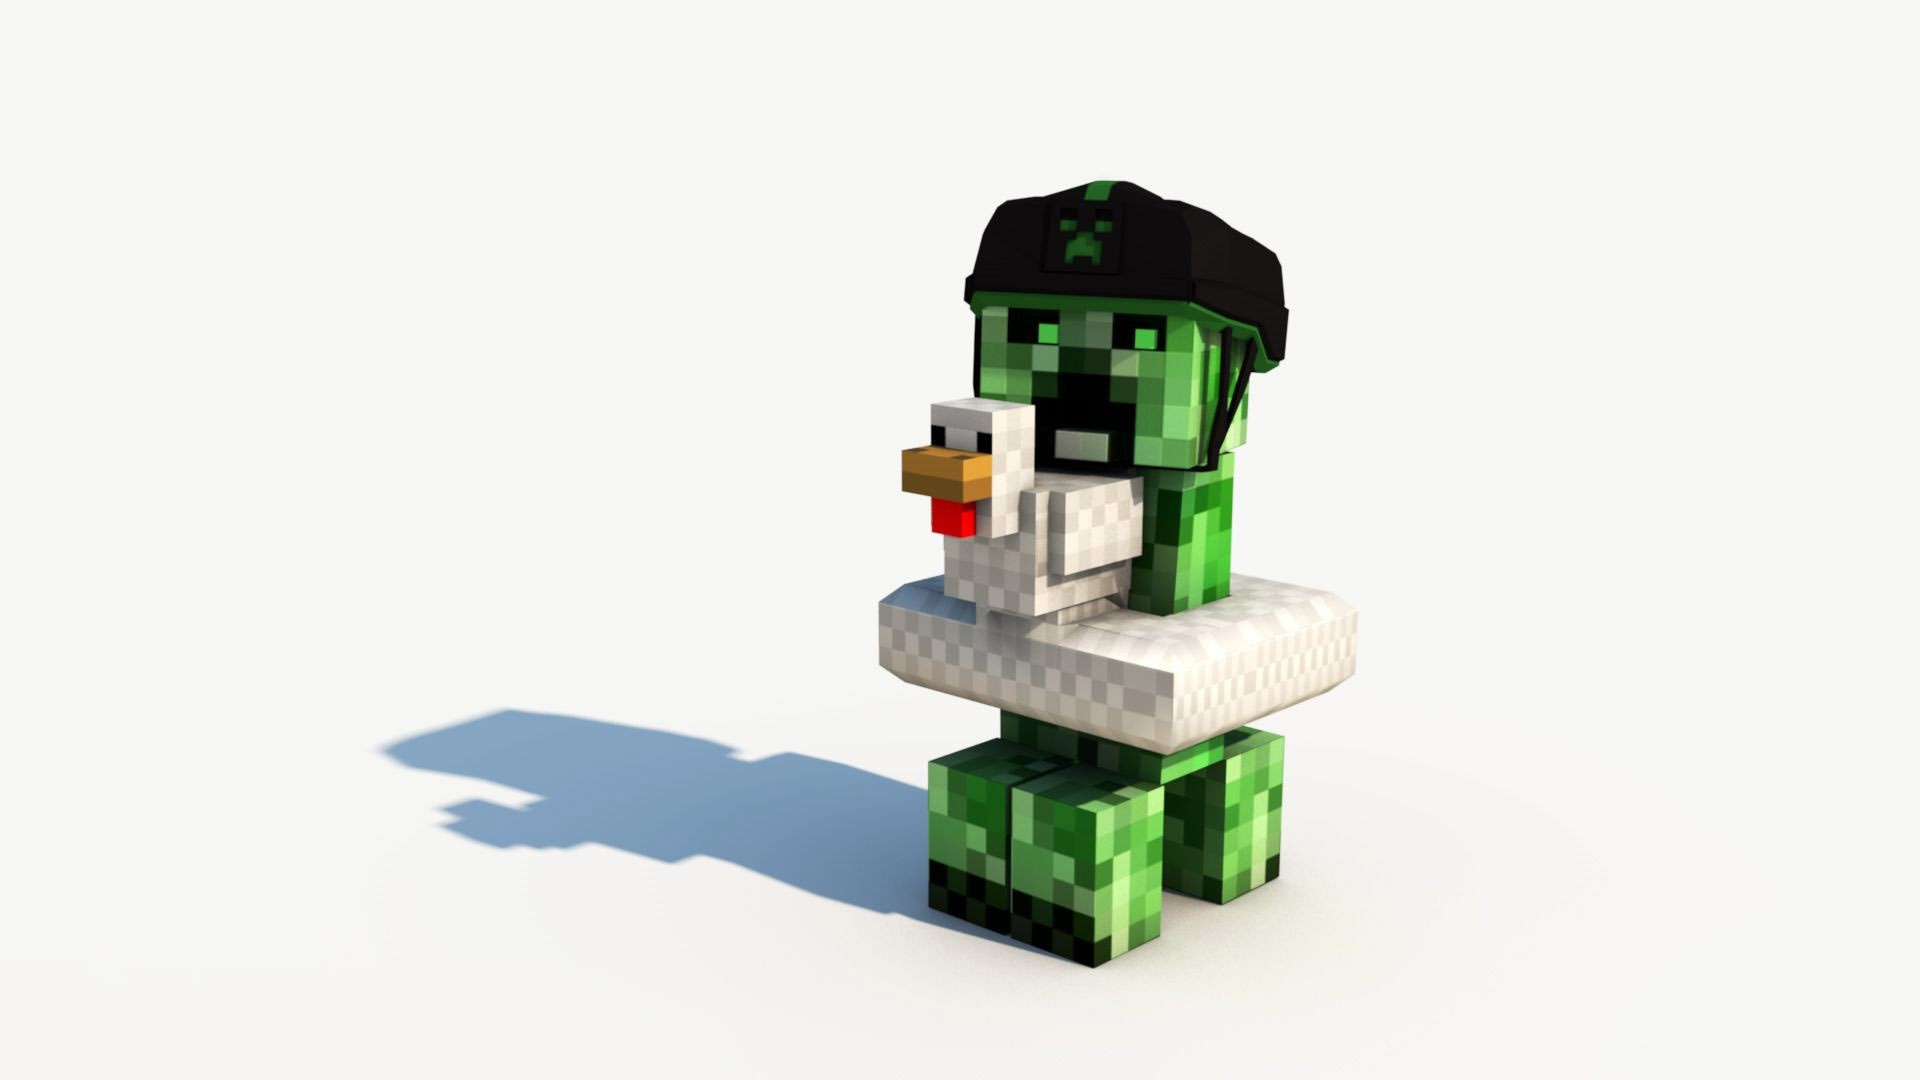 Creeper Wallpaper Hd Minecraft Creeper Iphone Backgrounds Hd Pixelstalk Net